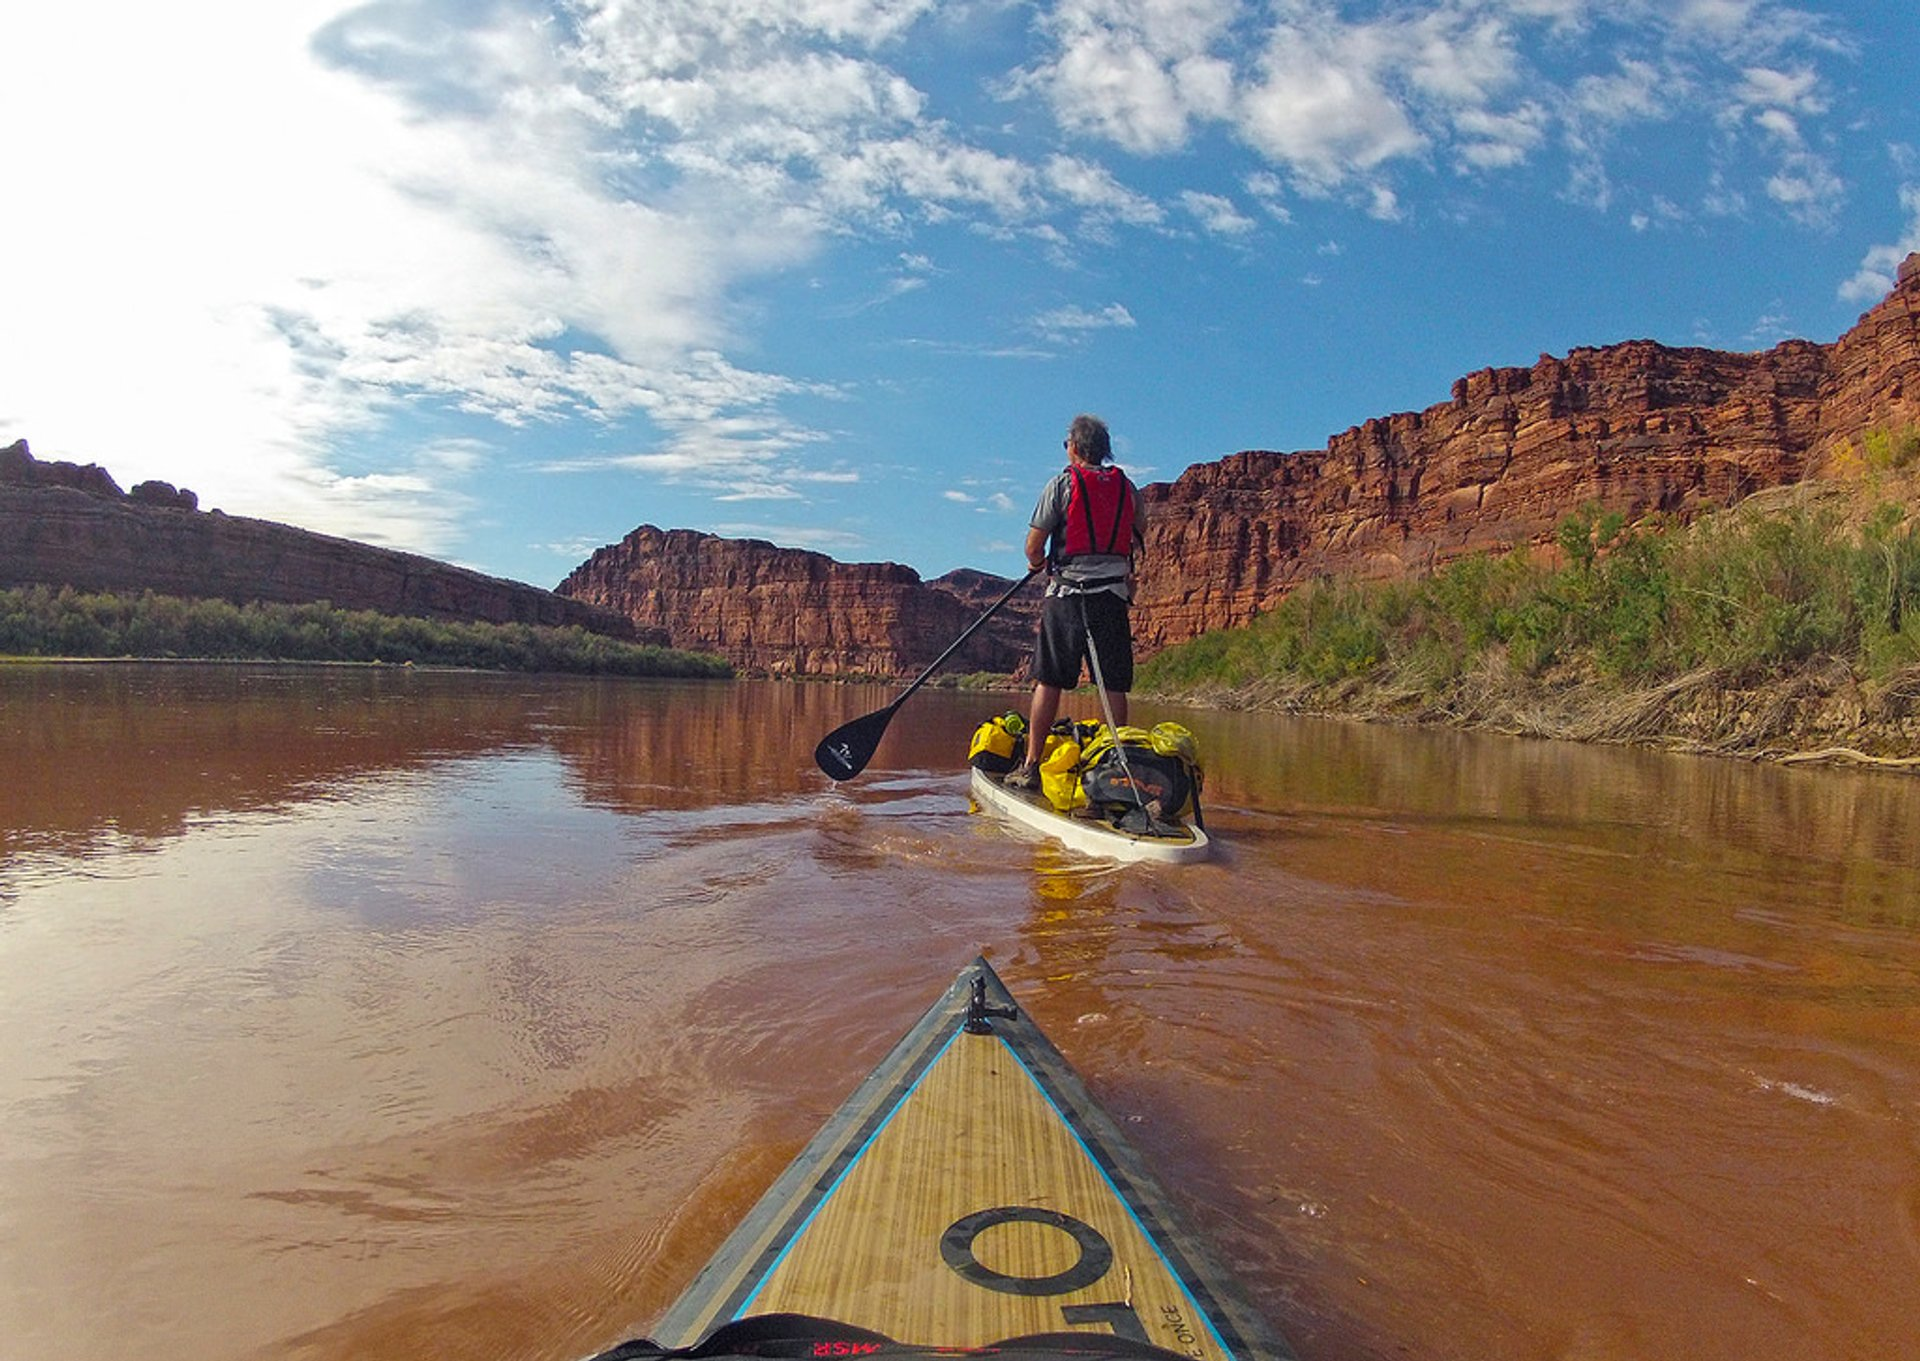 Stand Up Paddle Boarding in Utah 2020 - Best Time